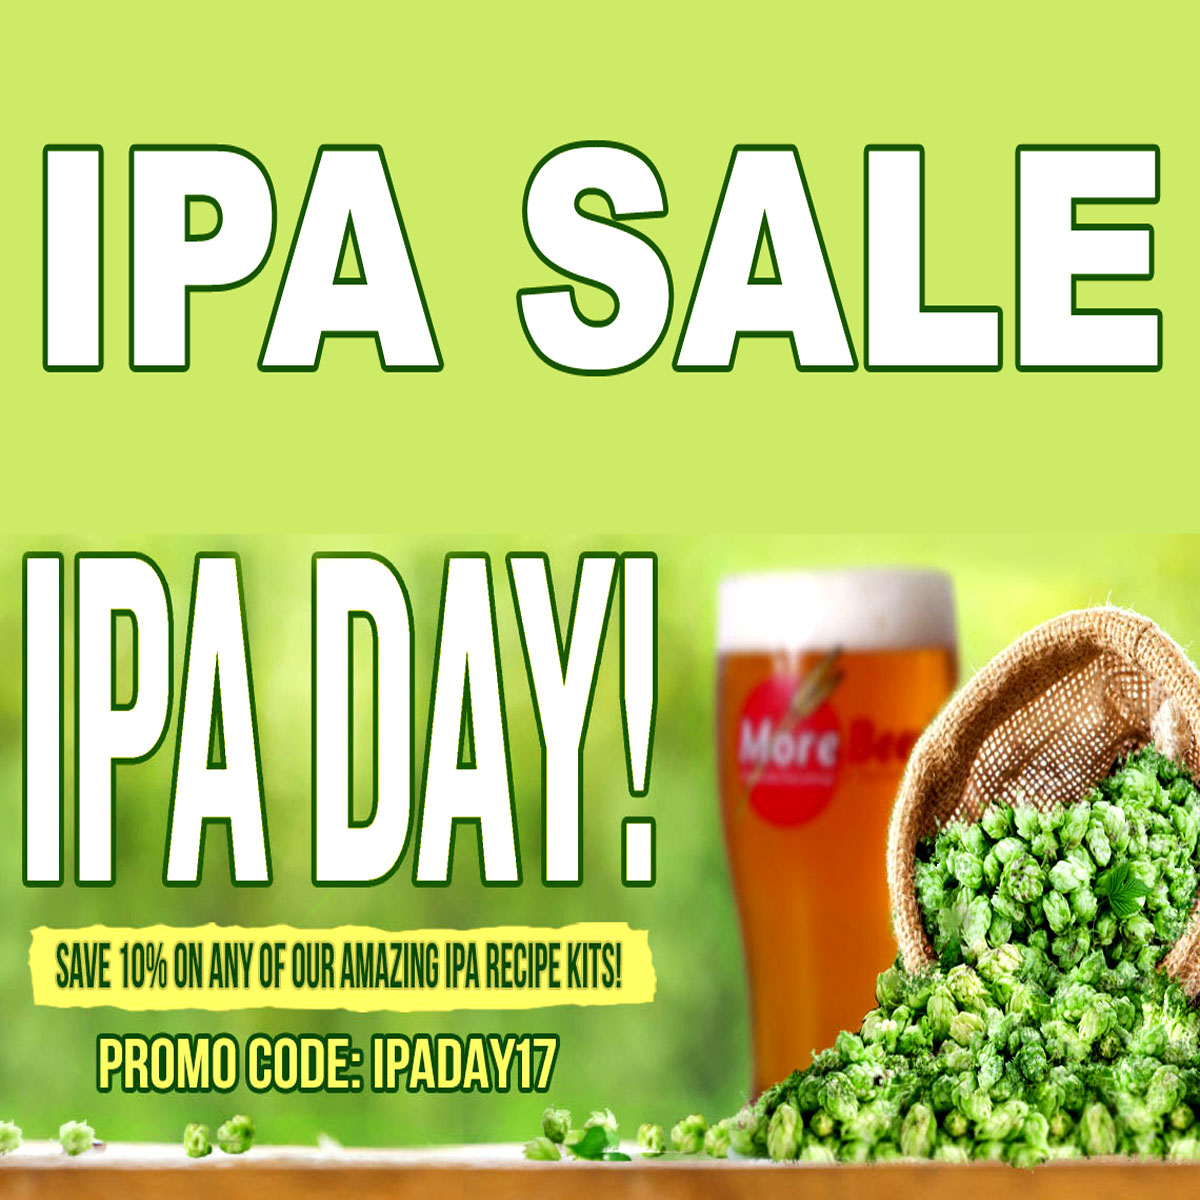 Home Brewer Promo Code for Save 10% On All Of MoreBeer's IPA Kits Including Pliny the Elder Coupon Code